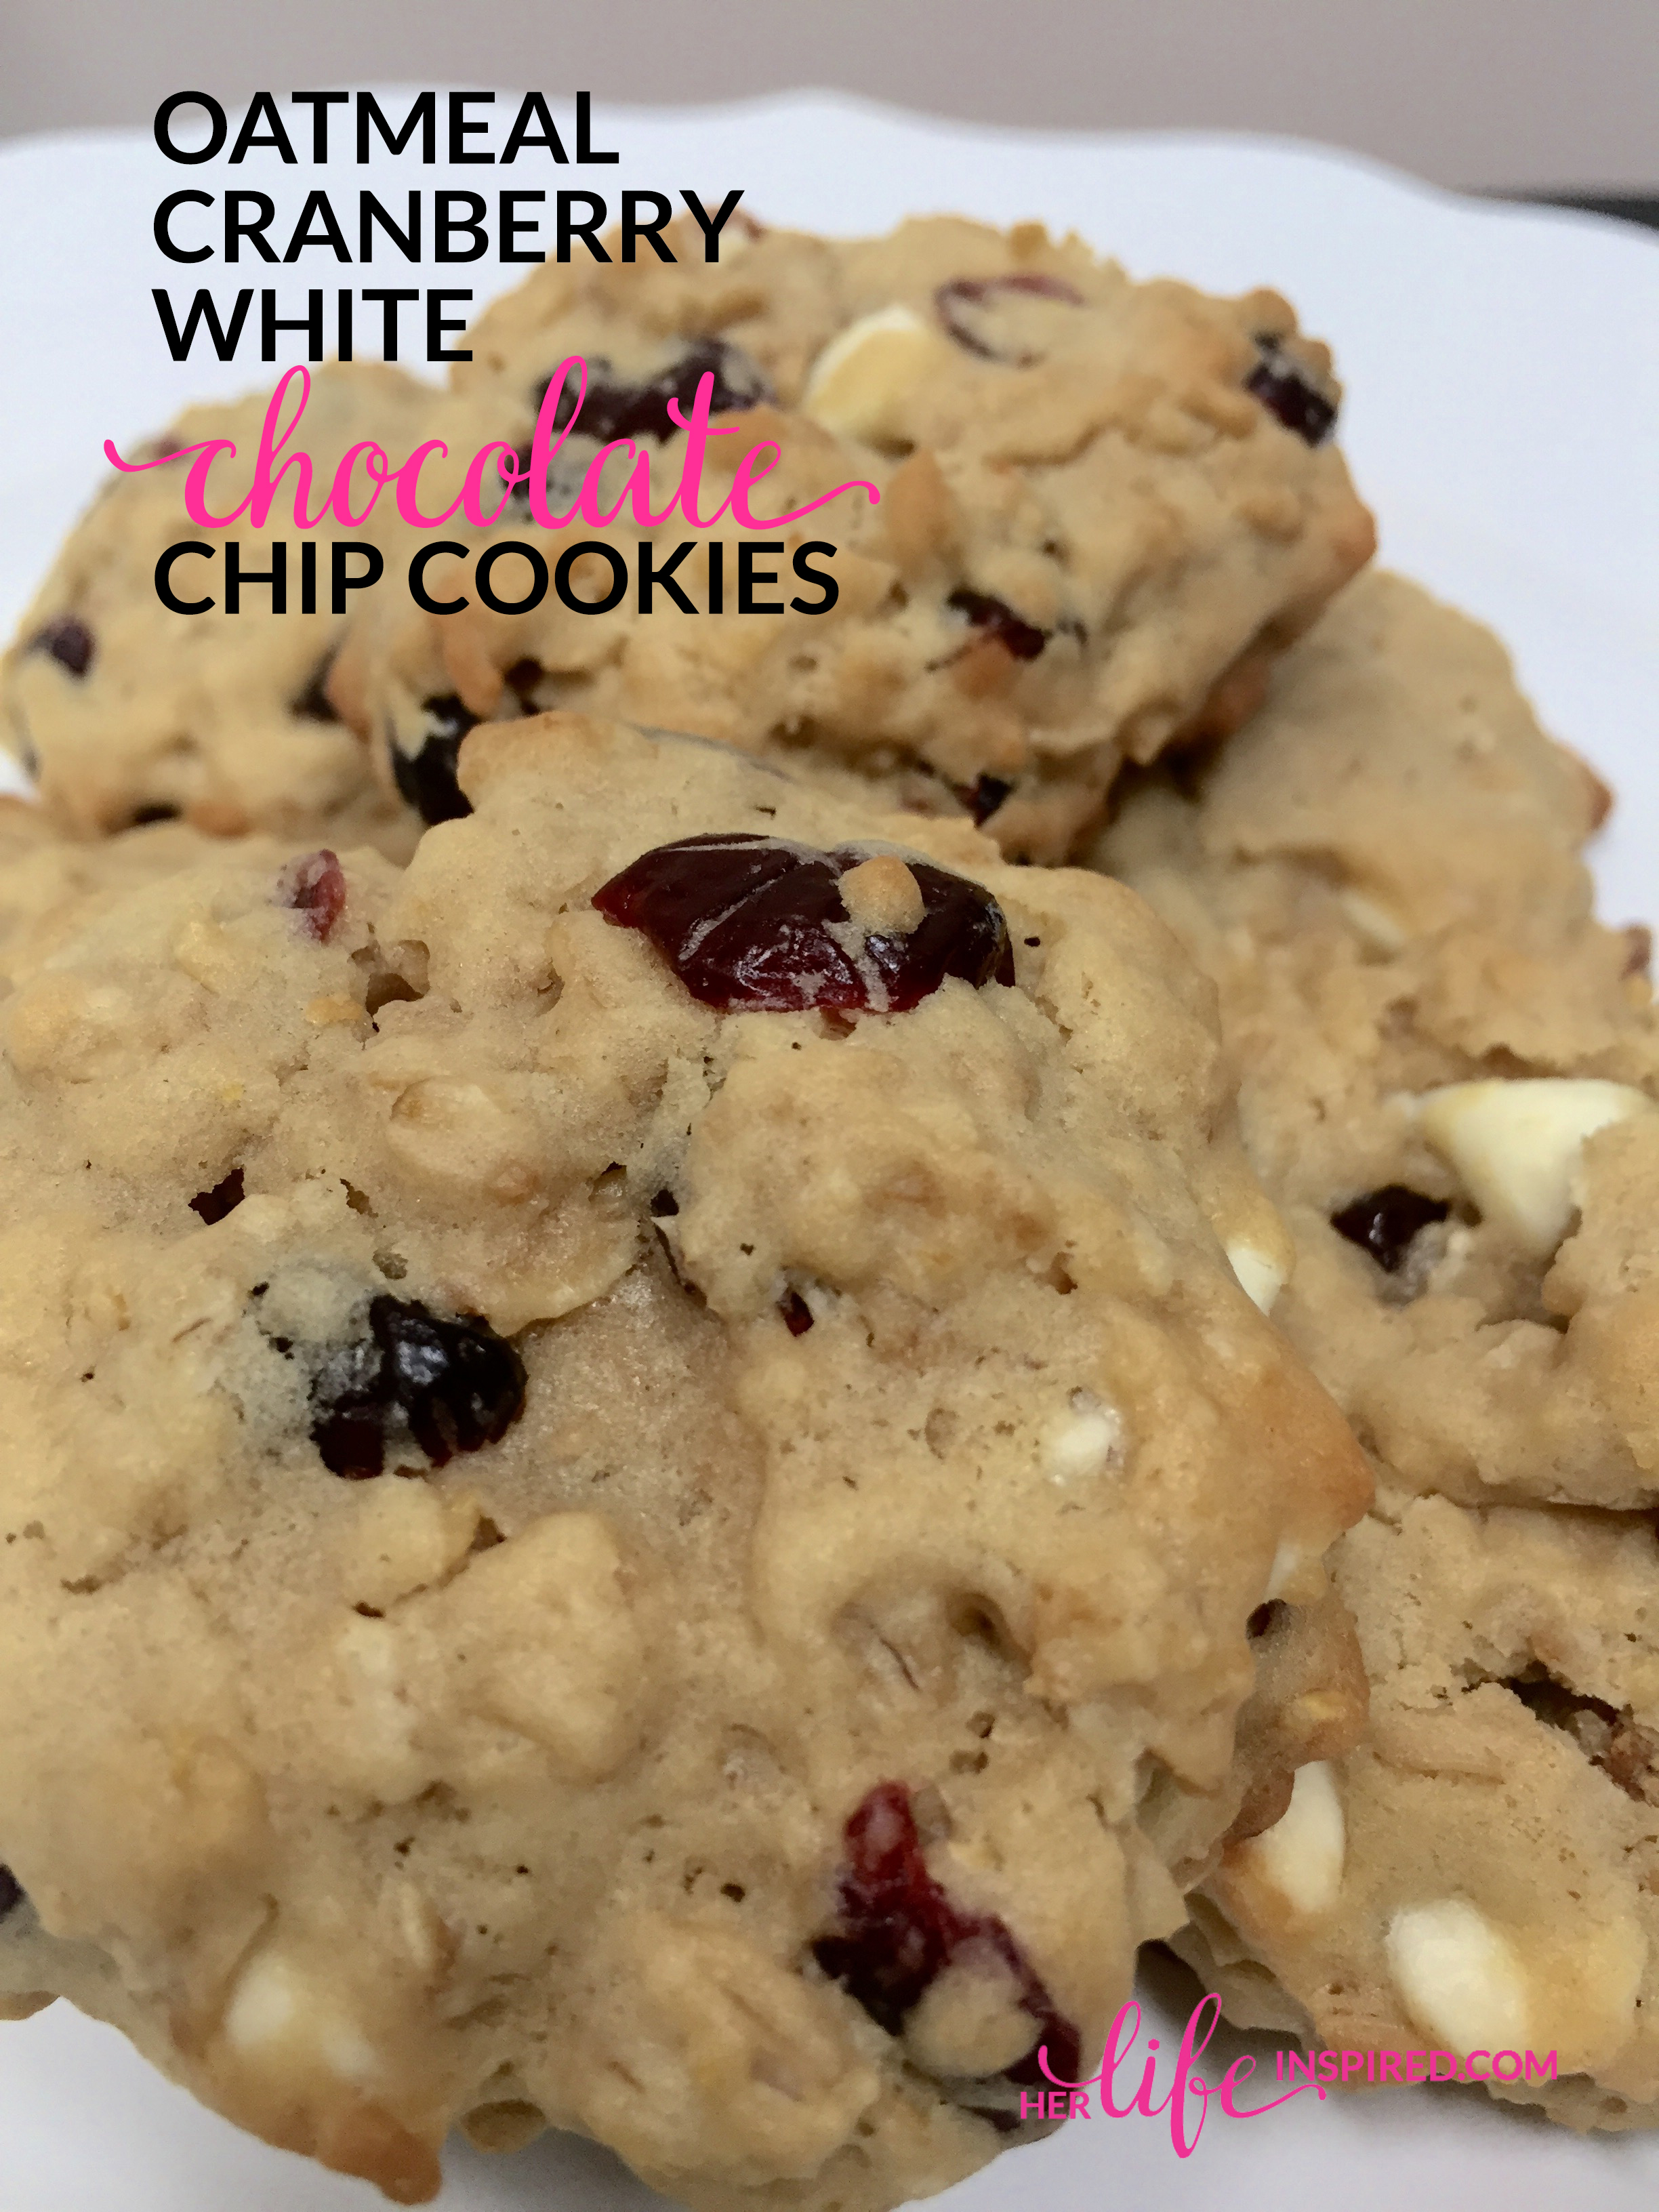 Oatmeal Cranberry White Chocolate Chip Cookie Recipe | Her Life ...